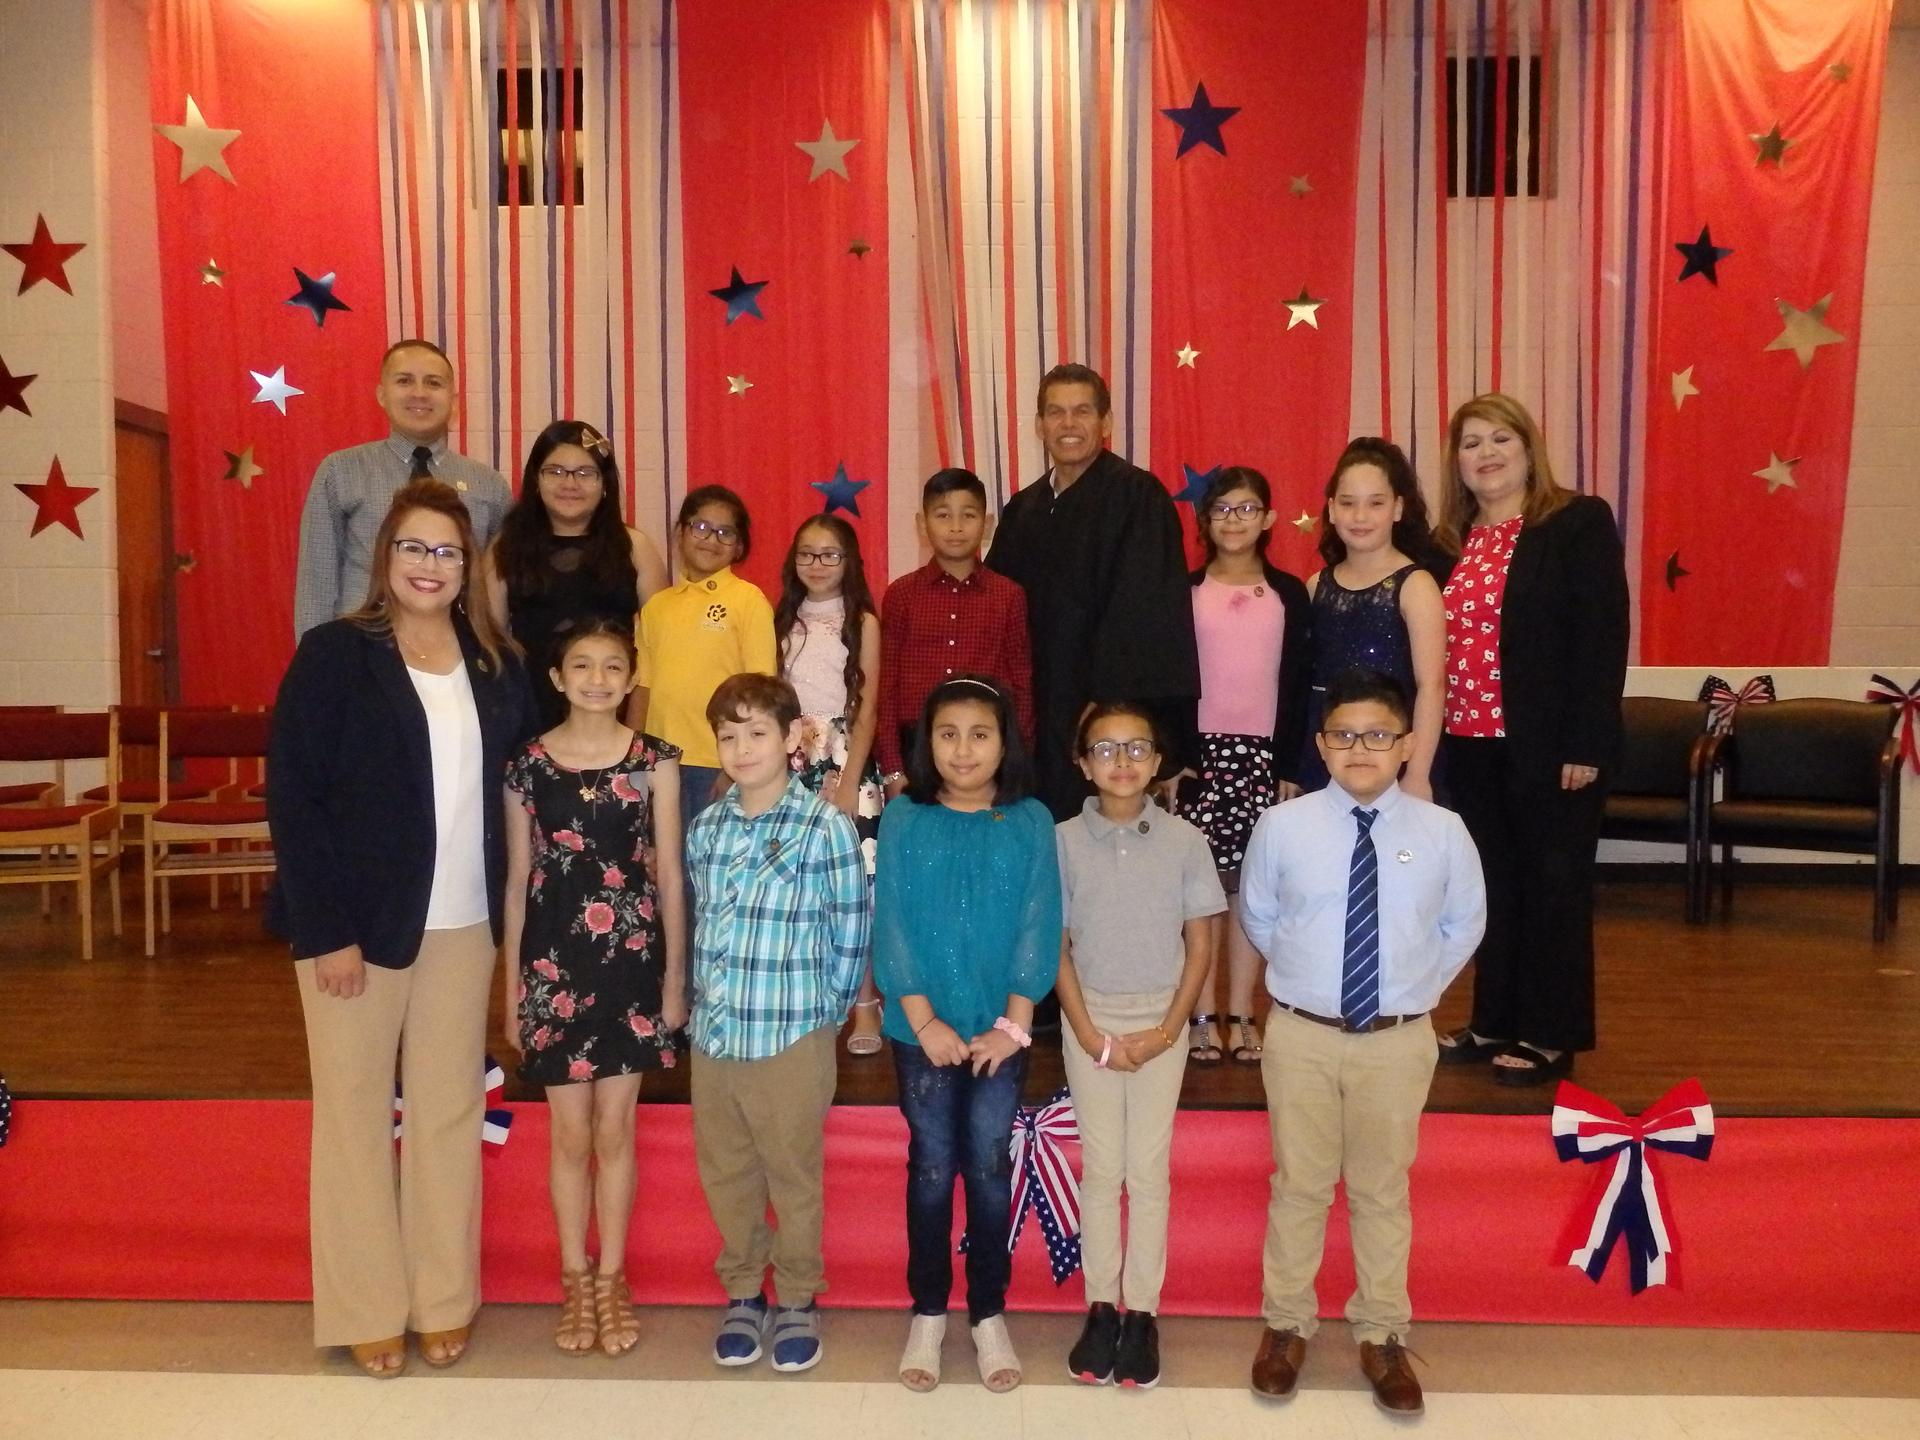 Elected Student council members 201-2020